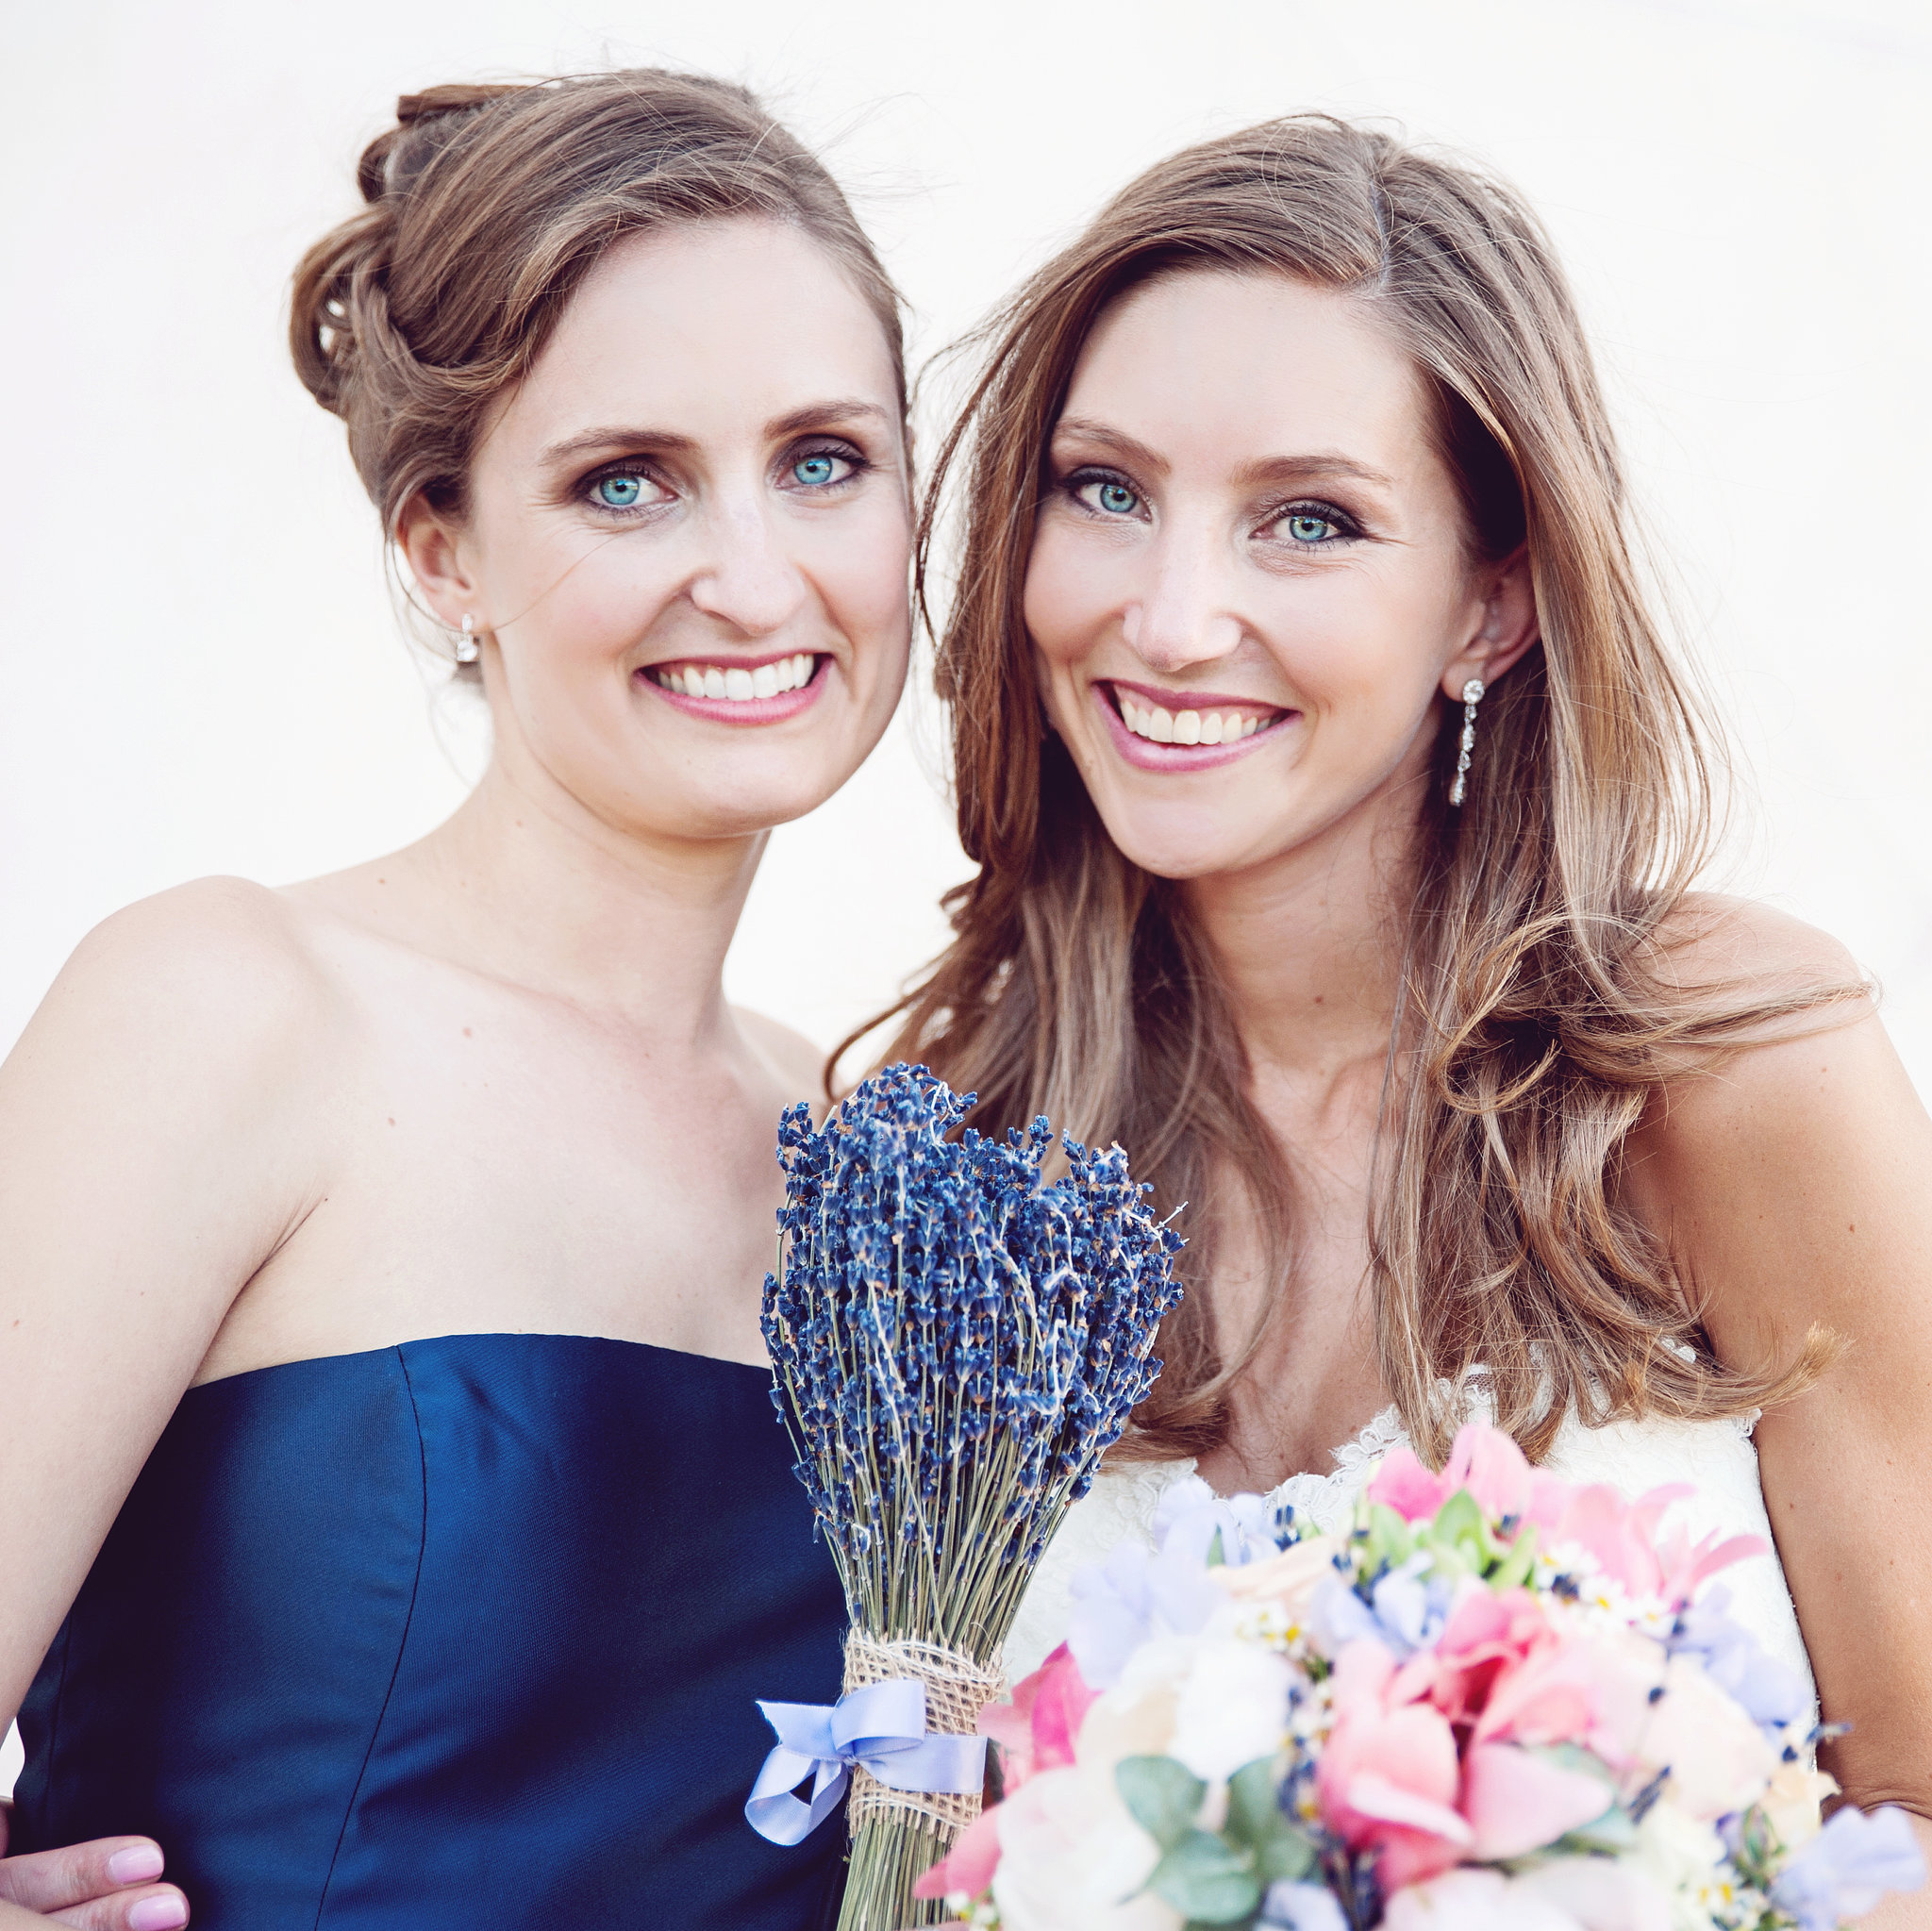 The Bride's Sister and Maid of Honor